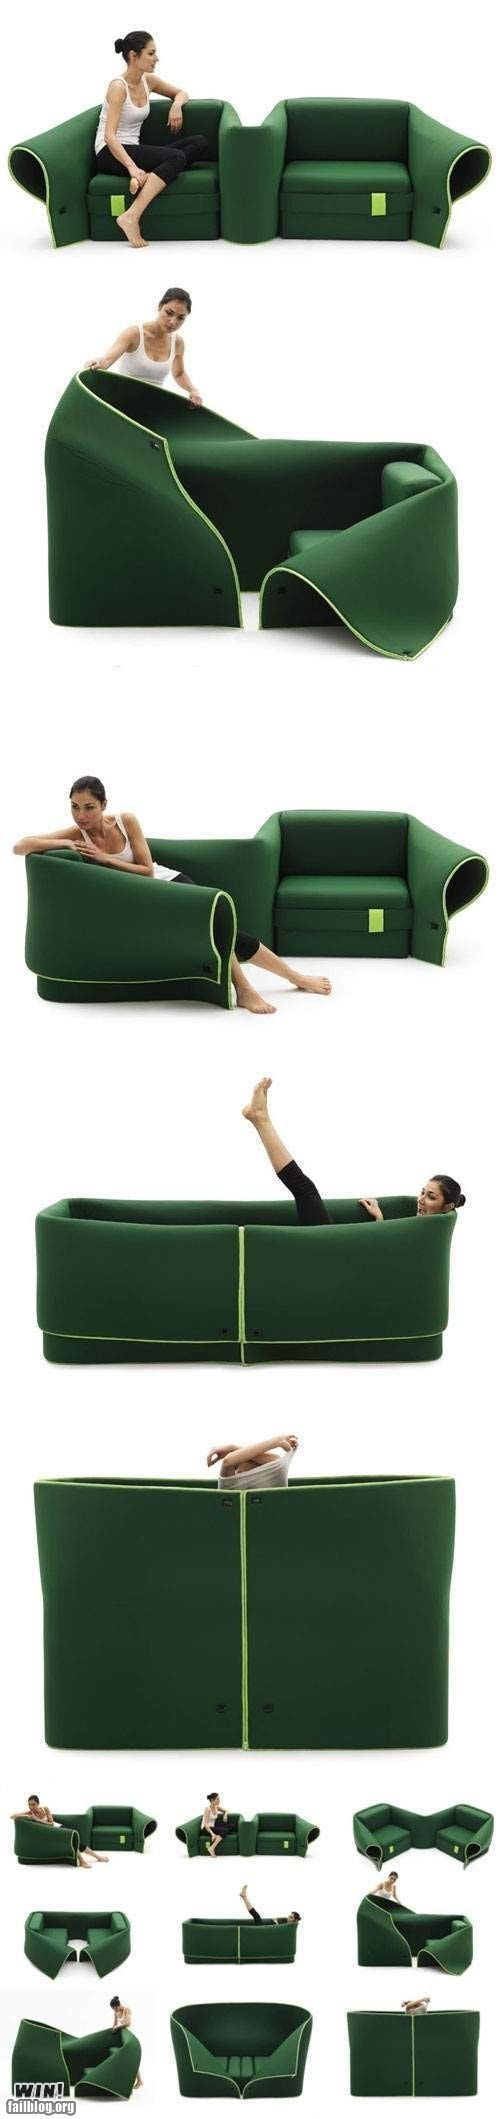 amorphous,couch,design,furniture,g rated,Hall of Fame,win